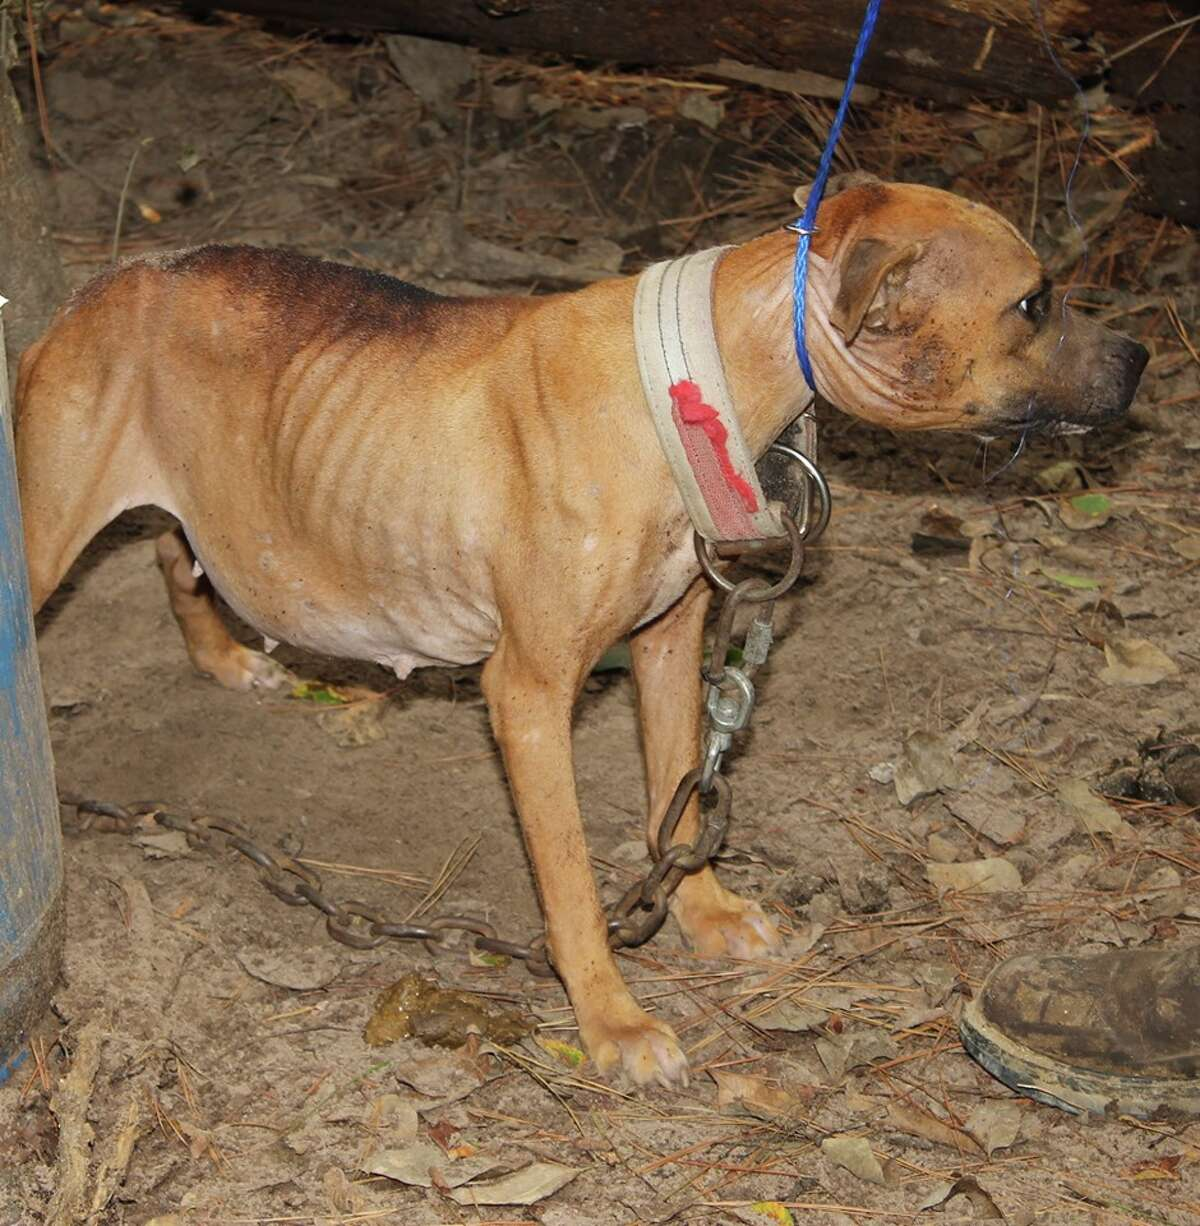 Fifteen dogs were found chained up to trees and deserted in a wooded area of Grimes County last month. (File photo) A new bill recently signed into law makes it a federal crime to abuse animals in the U.S.